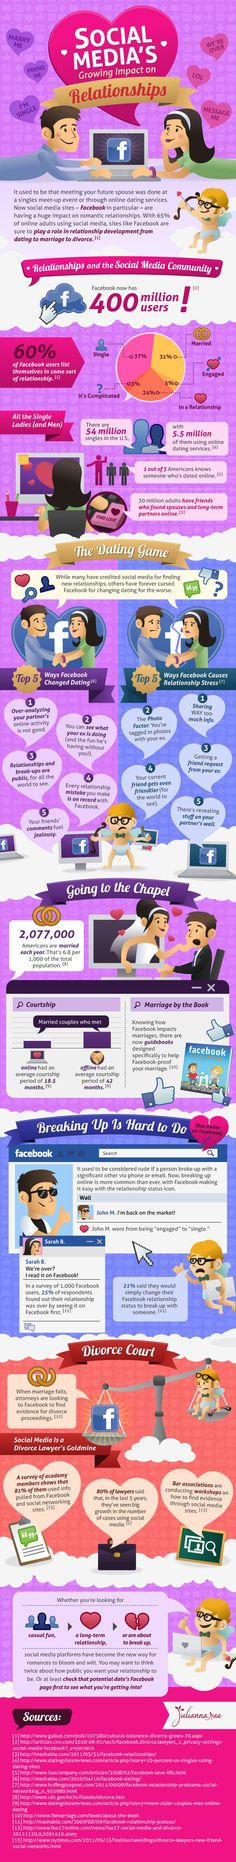 Social Media's Growing Impact On Relationships on http://www.imgrind.com